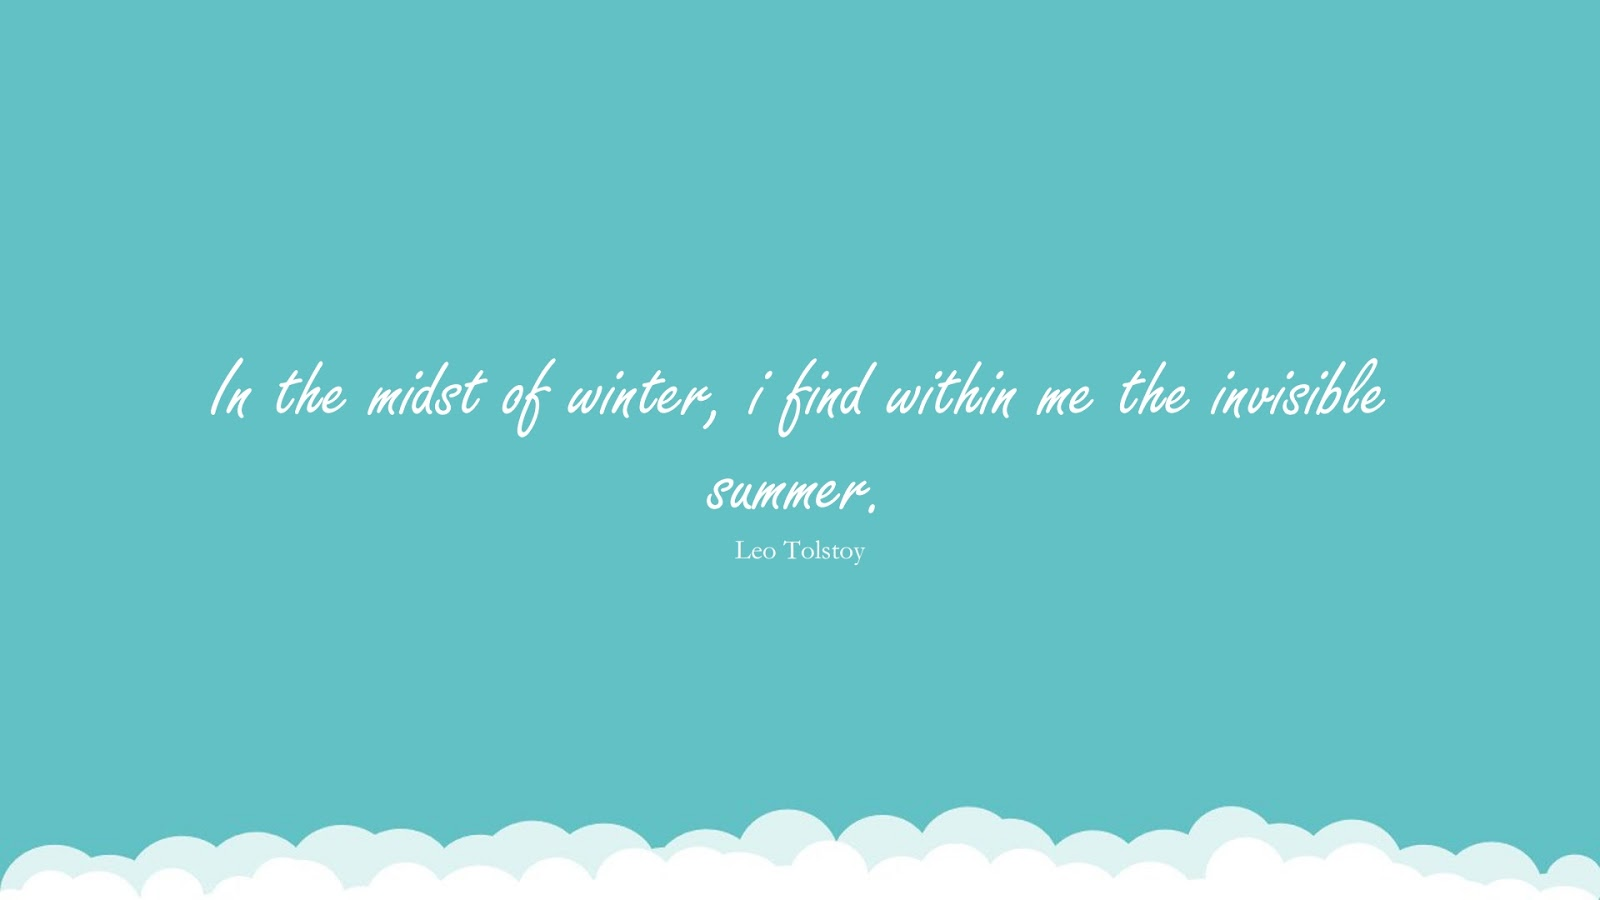 In the midst of winter, i find within me the invisible summer. (Leo Tolstoy);  #DepressionQuotes